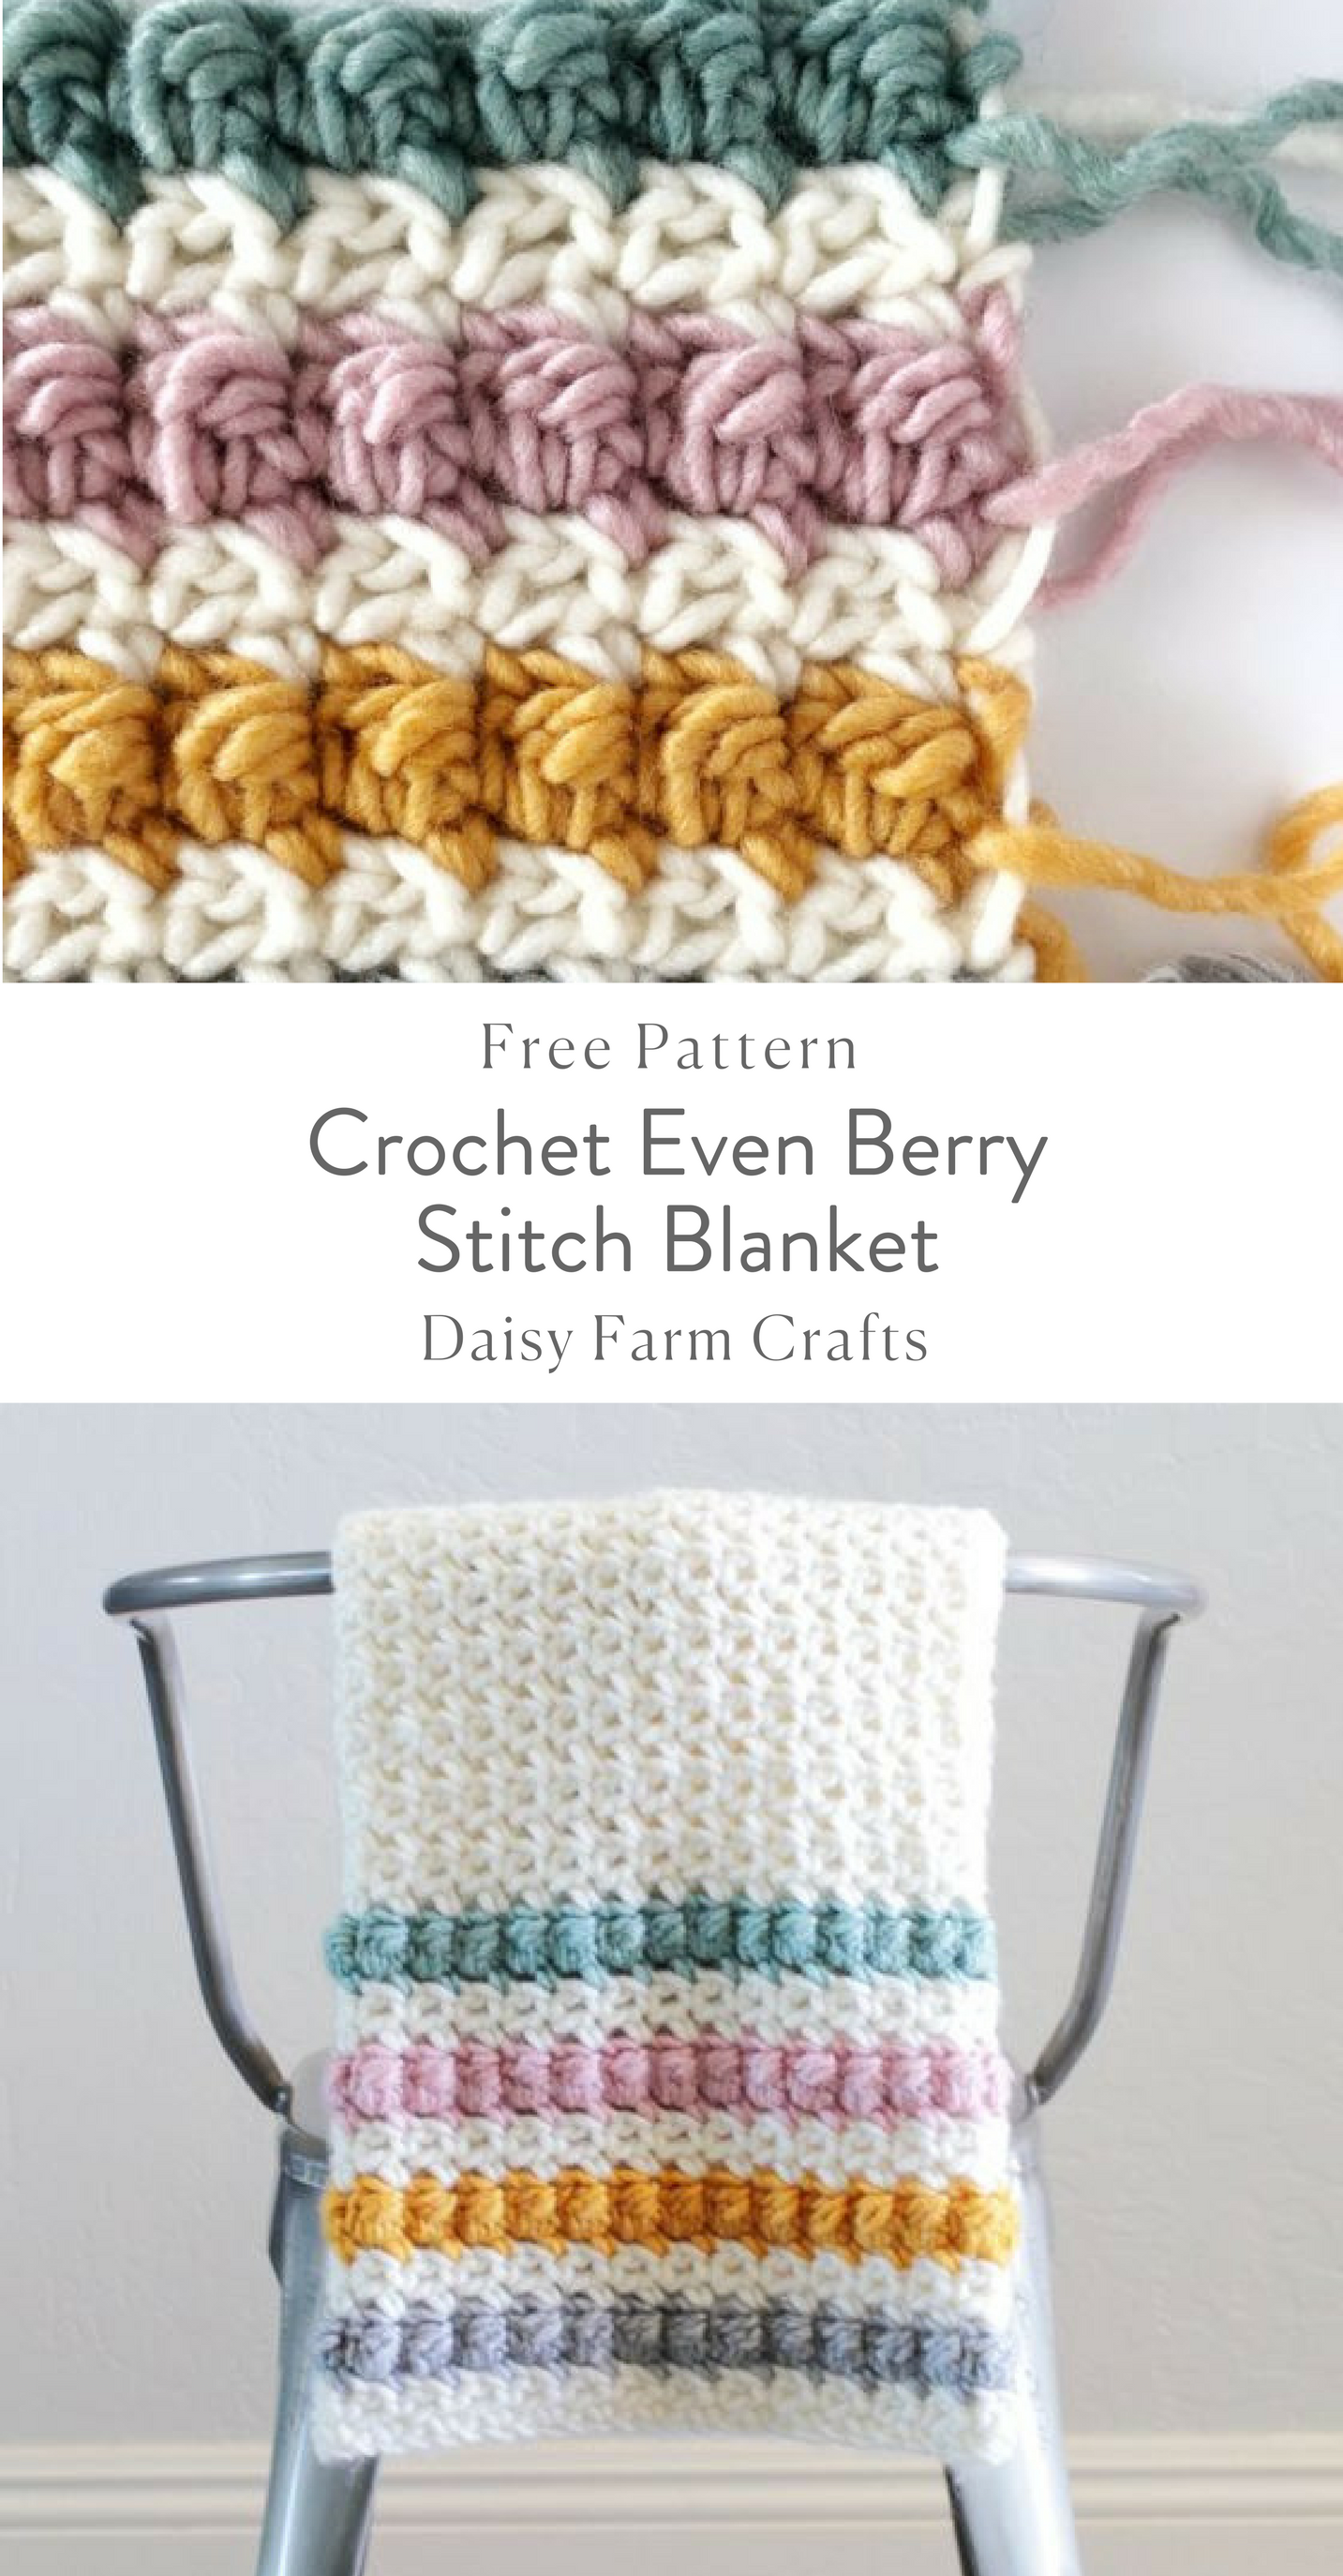 Crochet Even Berry Stitch Blanket - Free Pattern | Ganchillo ...